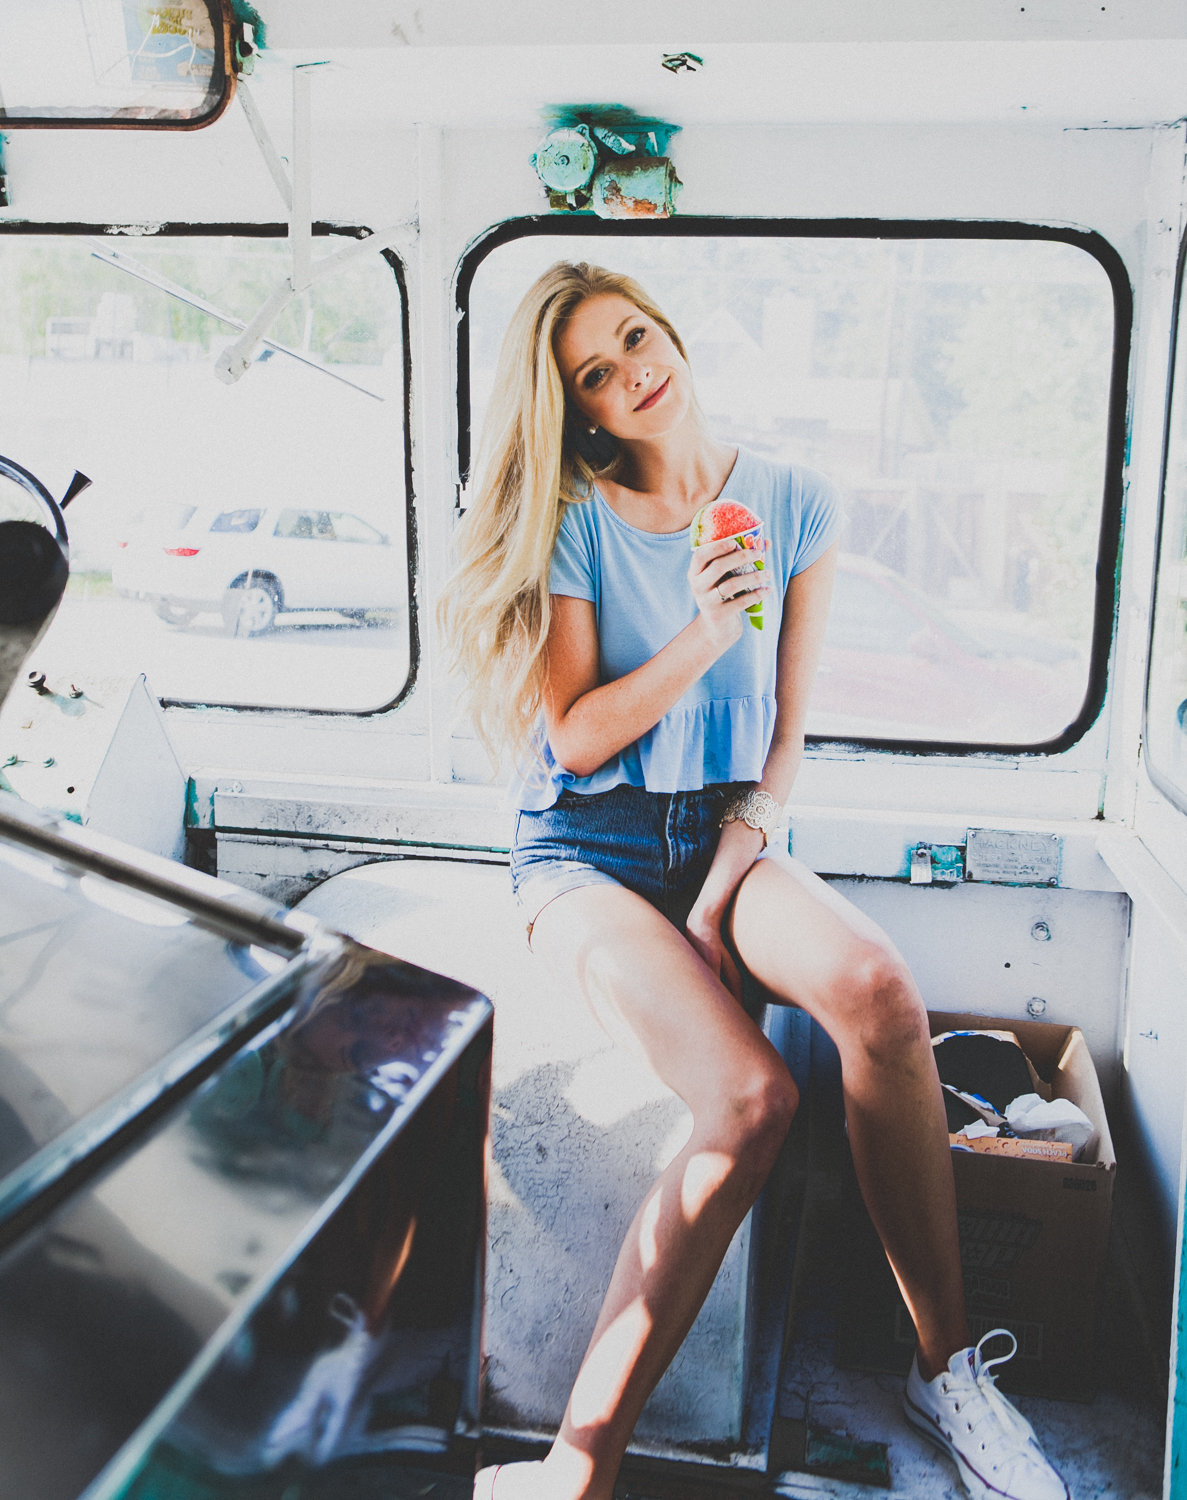 HannahGodwinIceCreamTruck-28.jpg